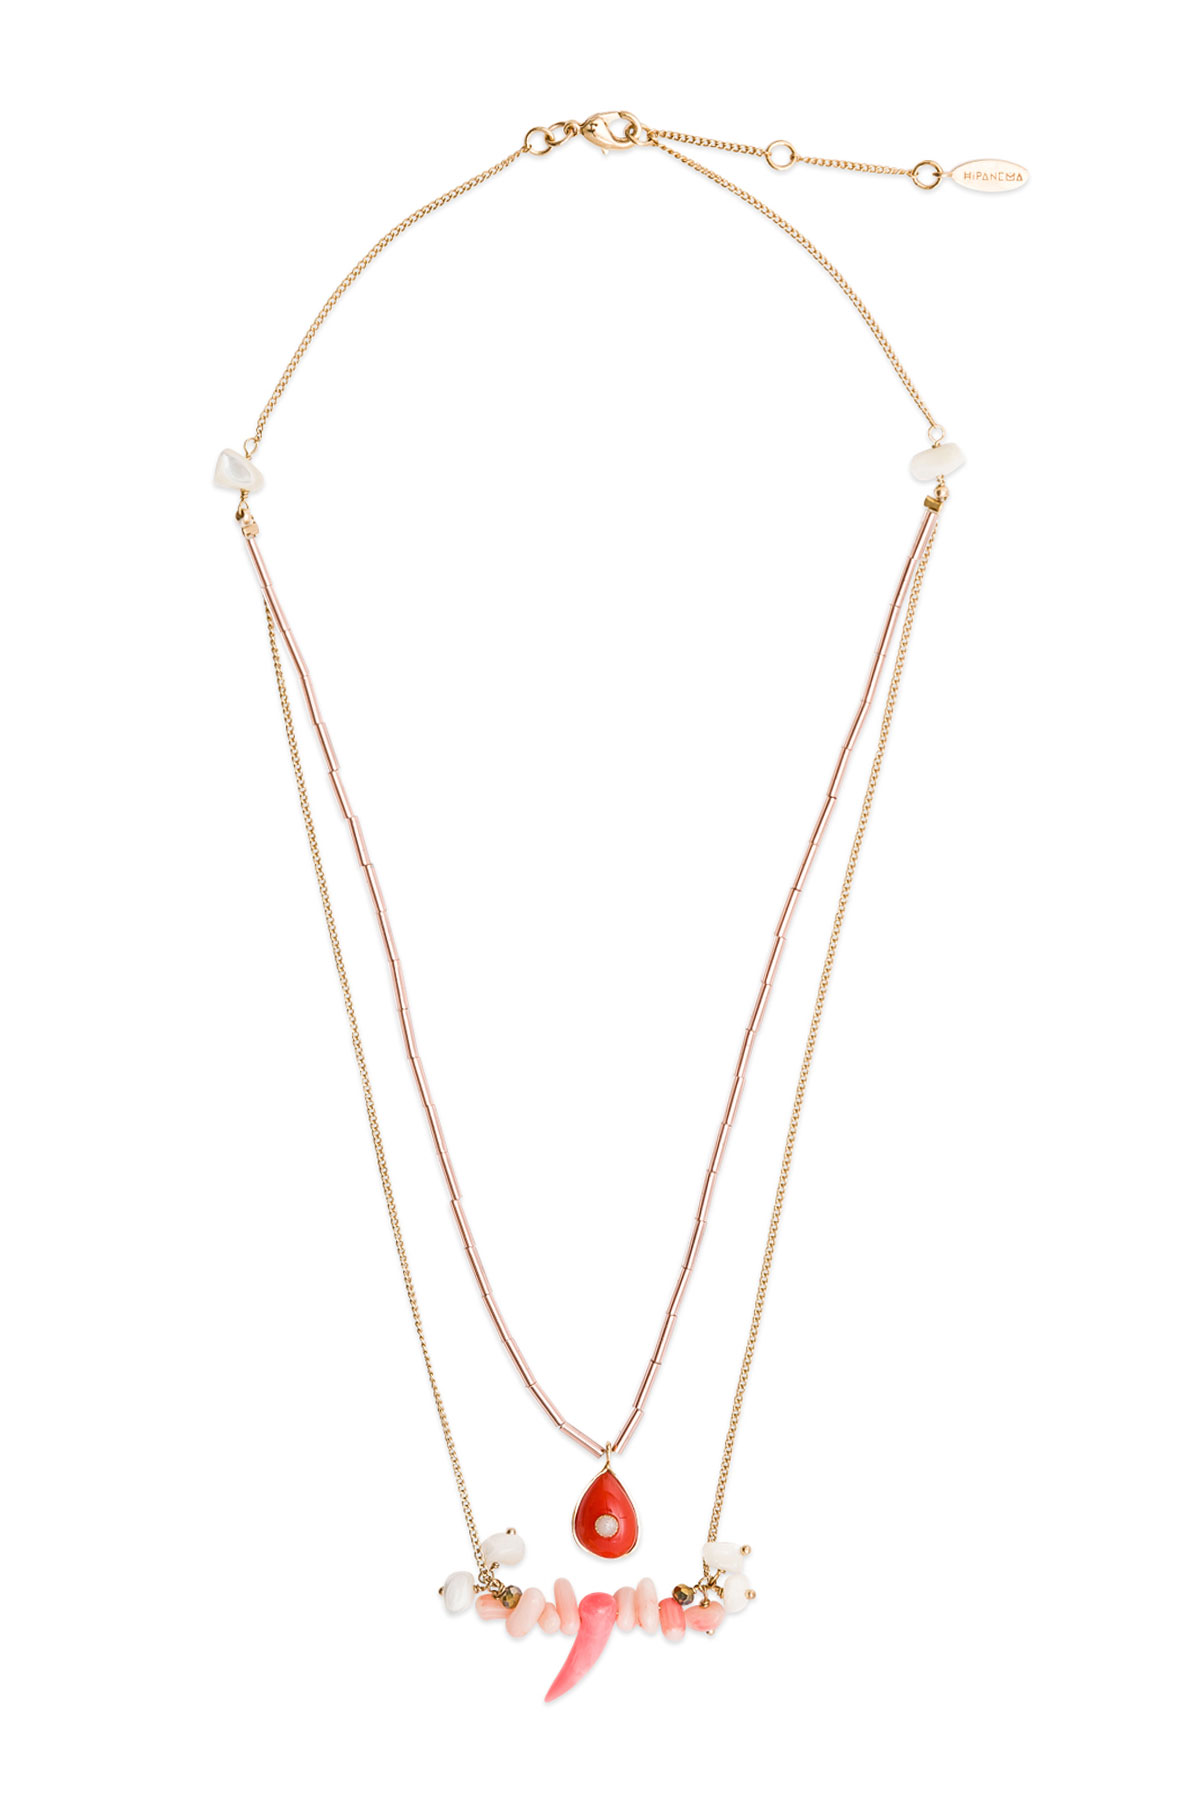 Tilos Beaded Layer Necklace - Coral 1